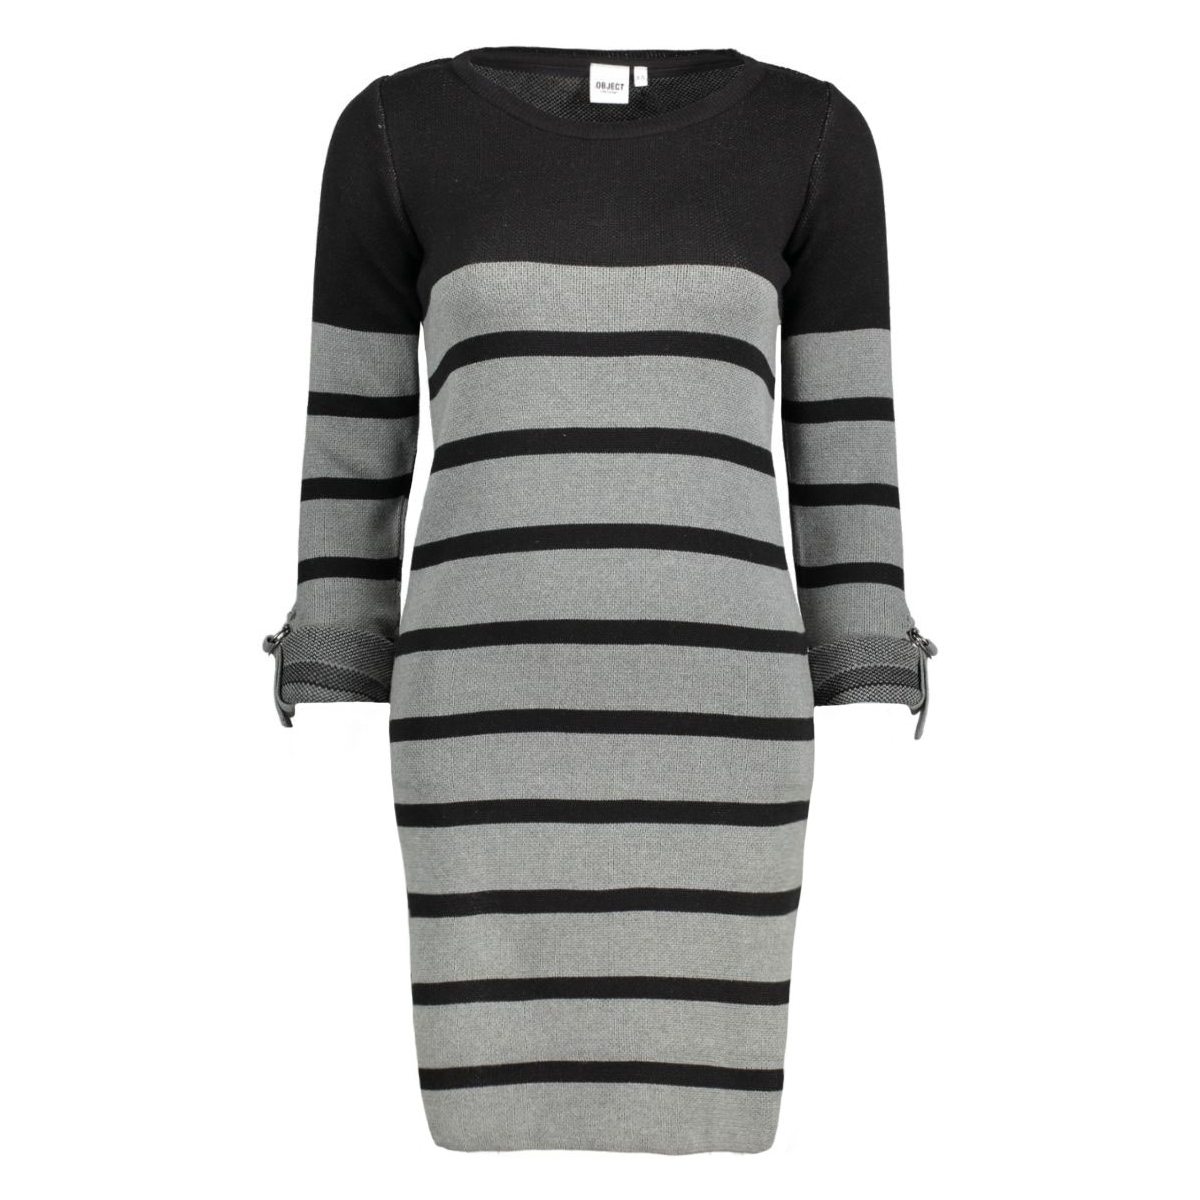 objmy l/s dress noos 23022846 object jurk black w. mgm stripes